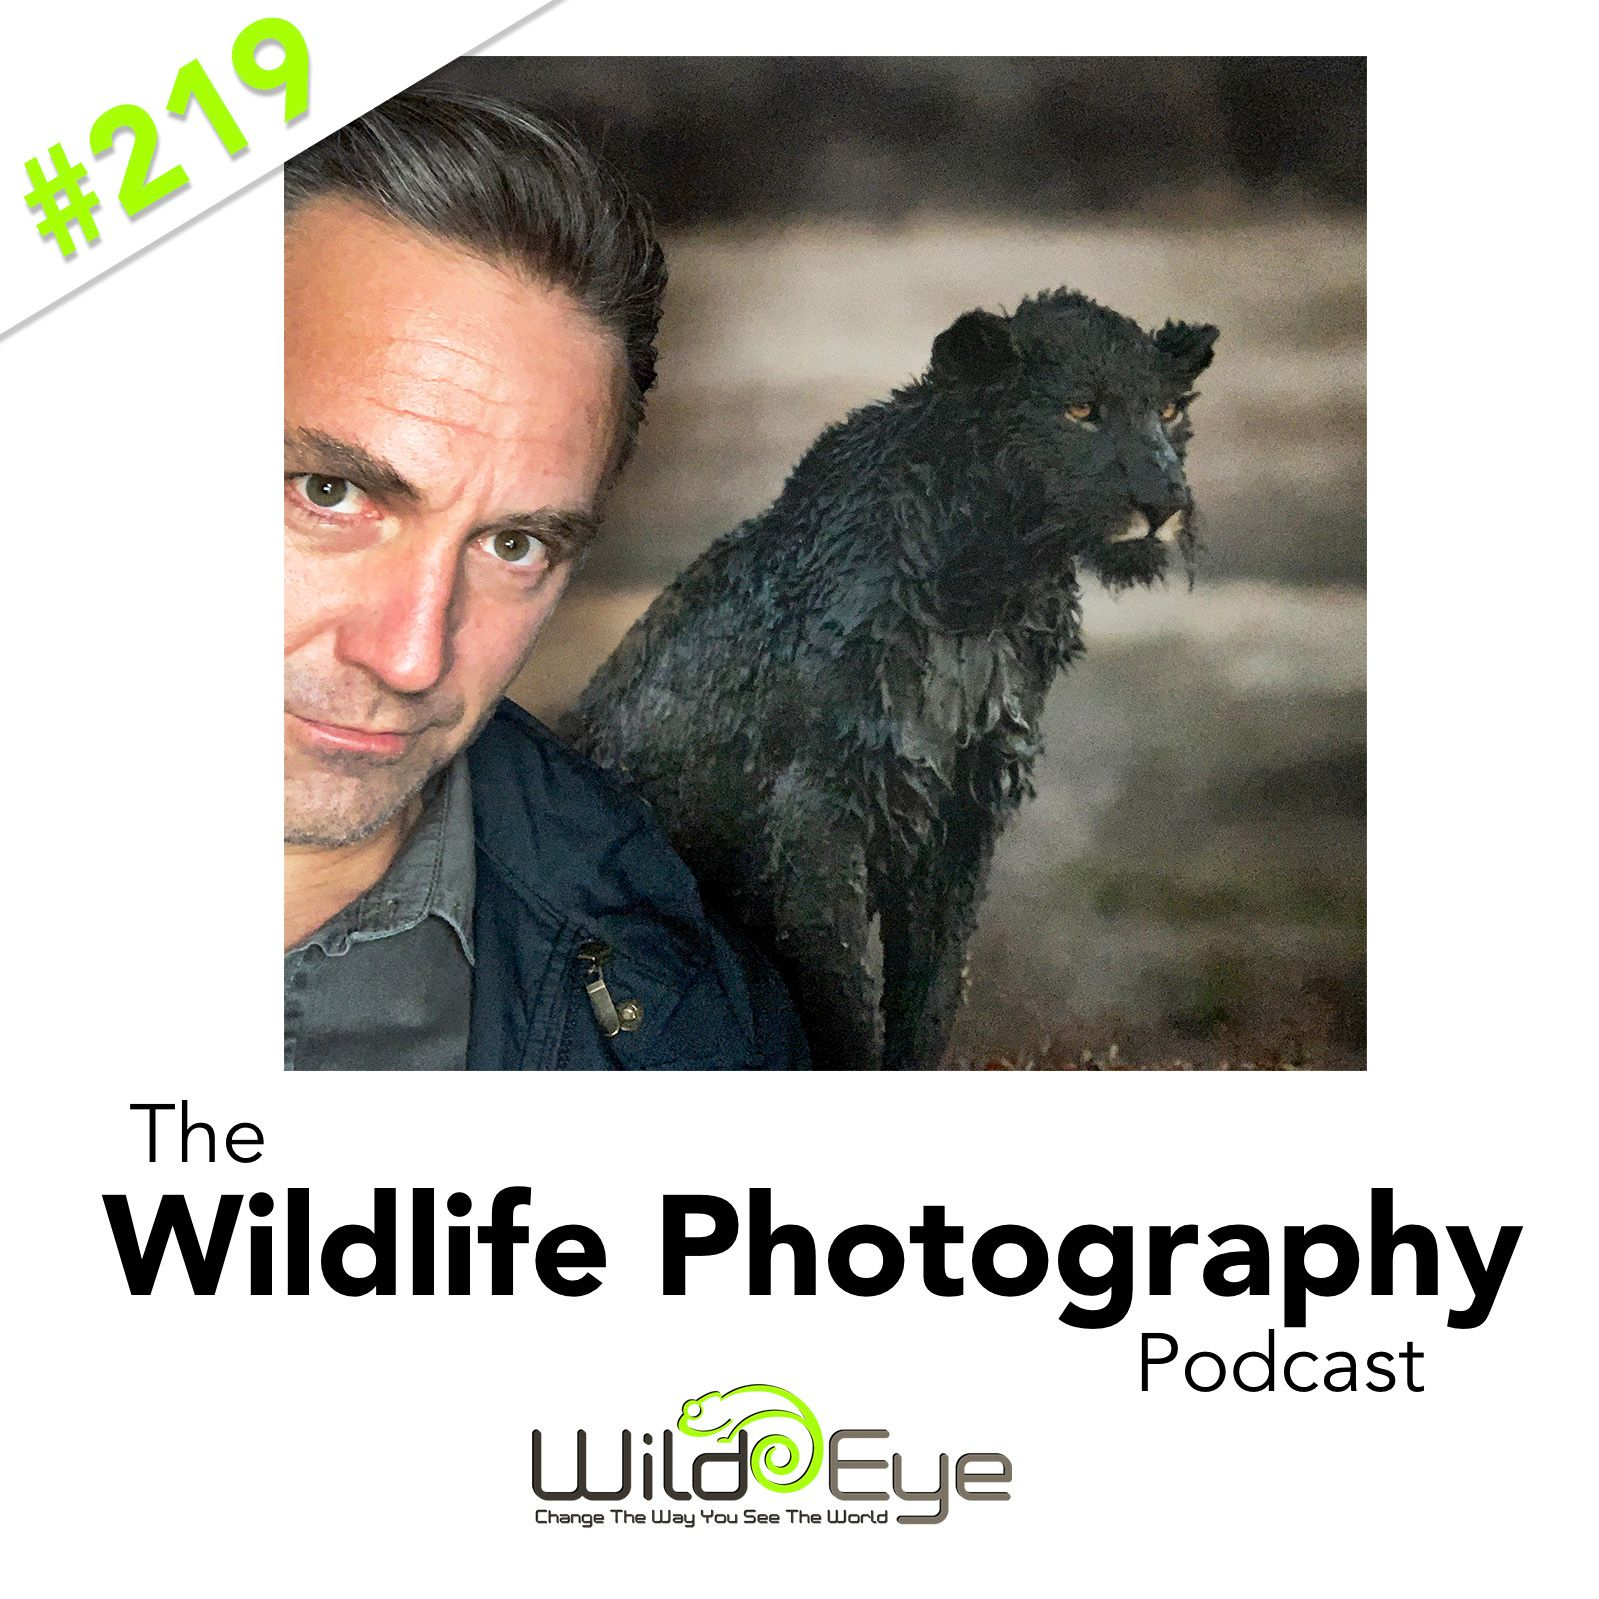 Epiode 219 - The Story Of A Black Muddy Lion - The Wildlife